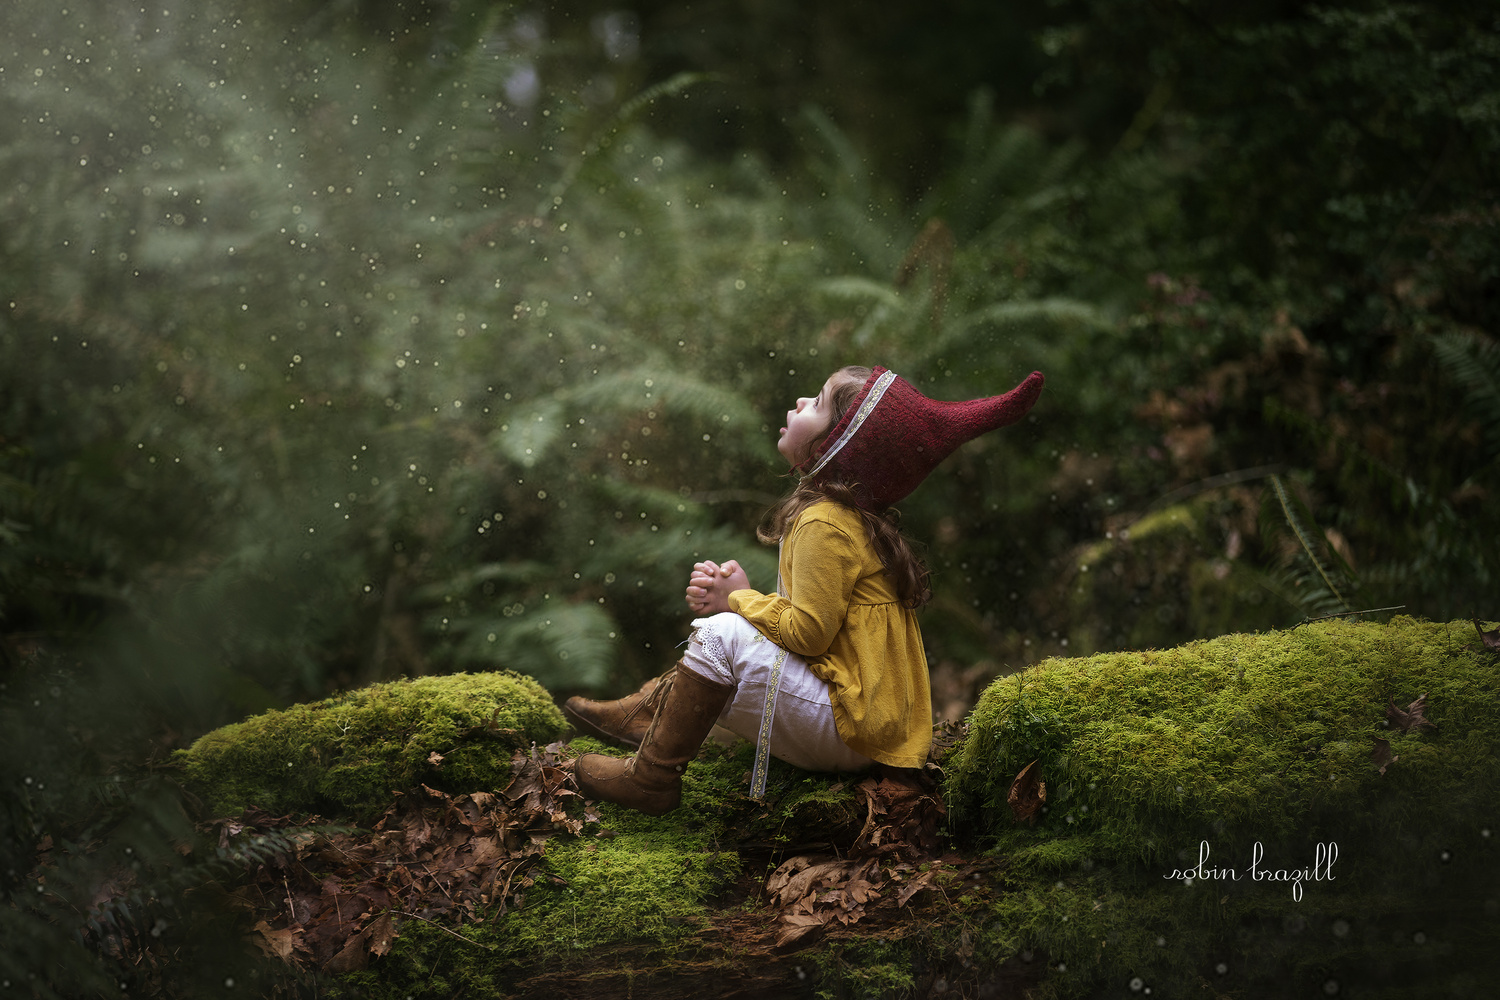 Little Gnome in Fairy Dust by Robin Brazill